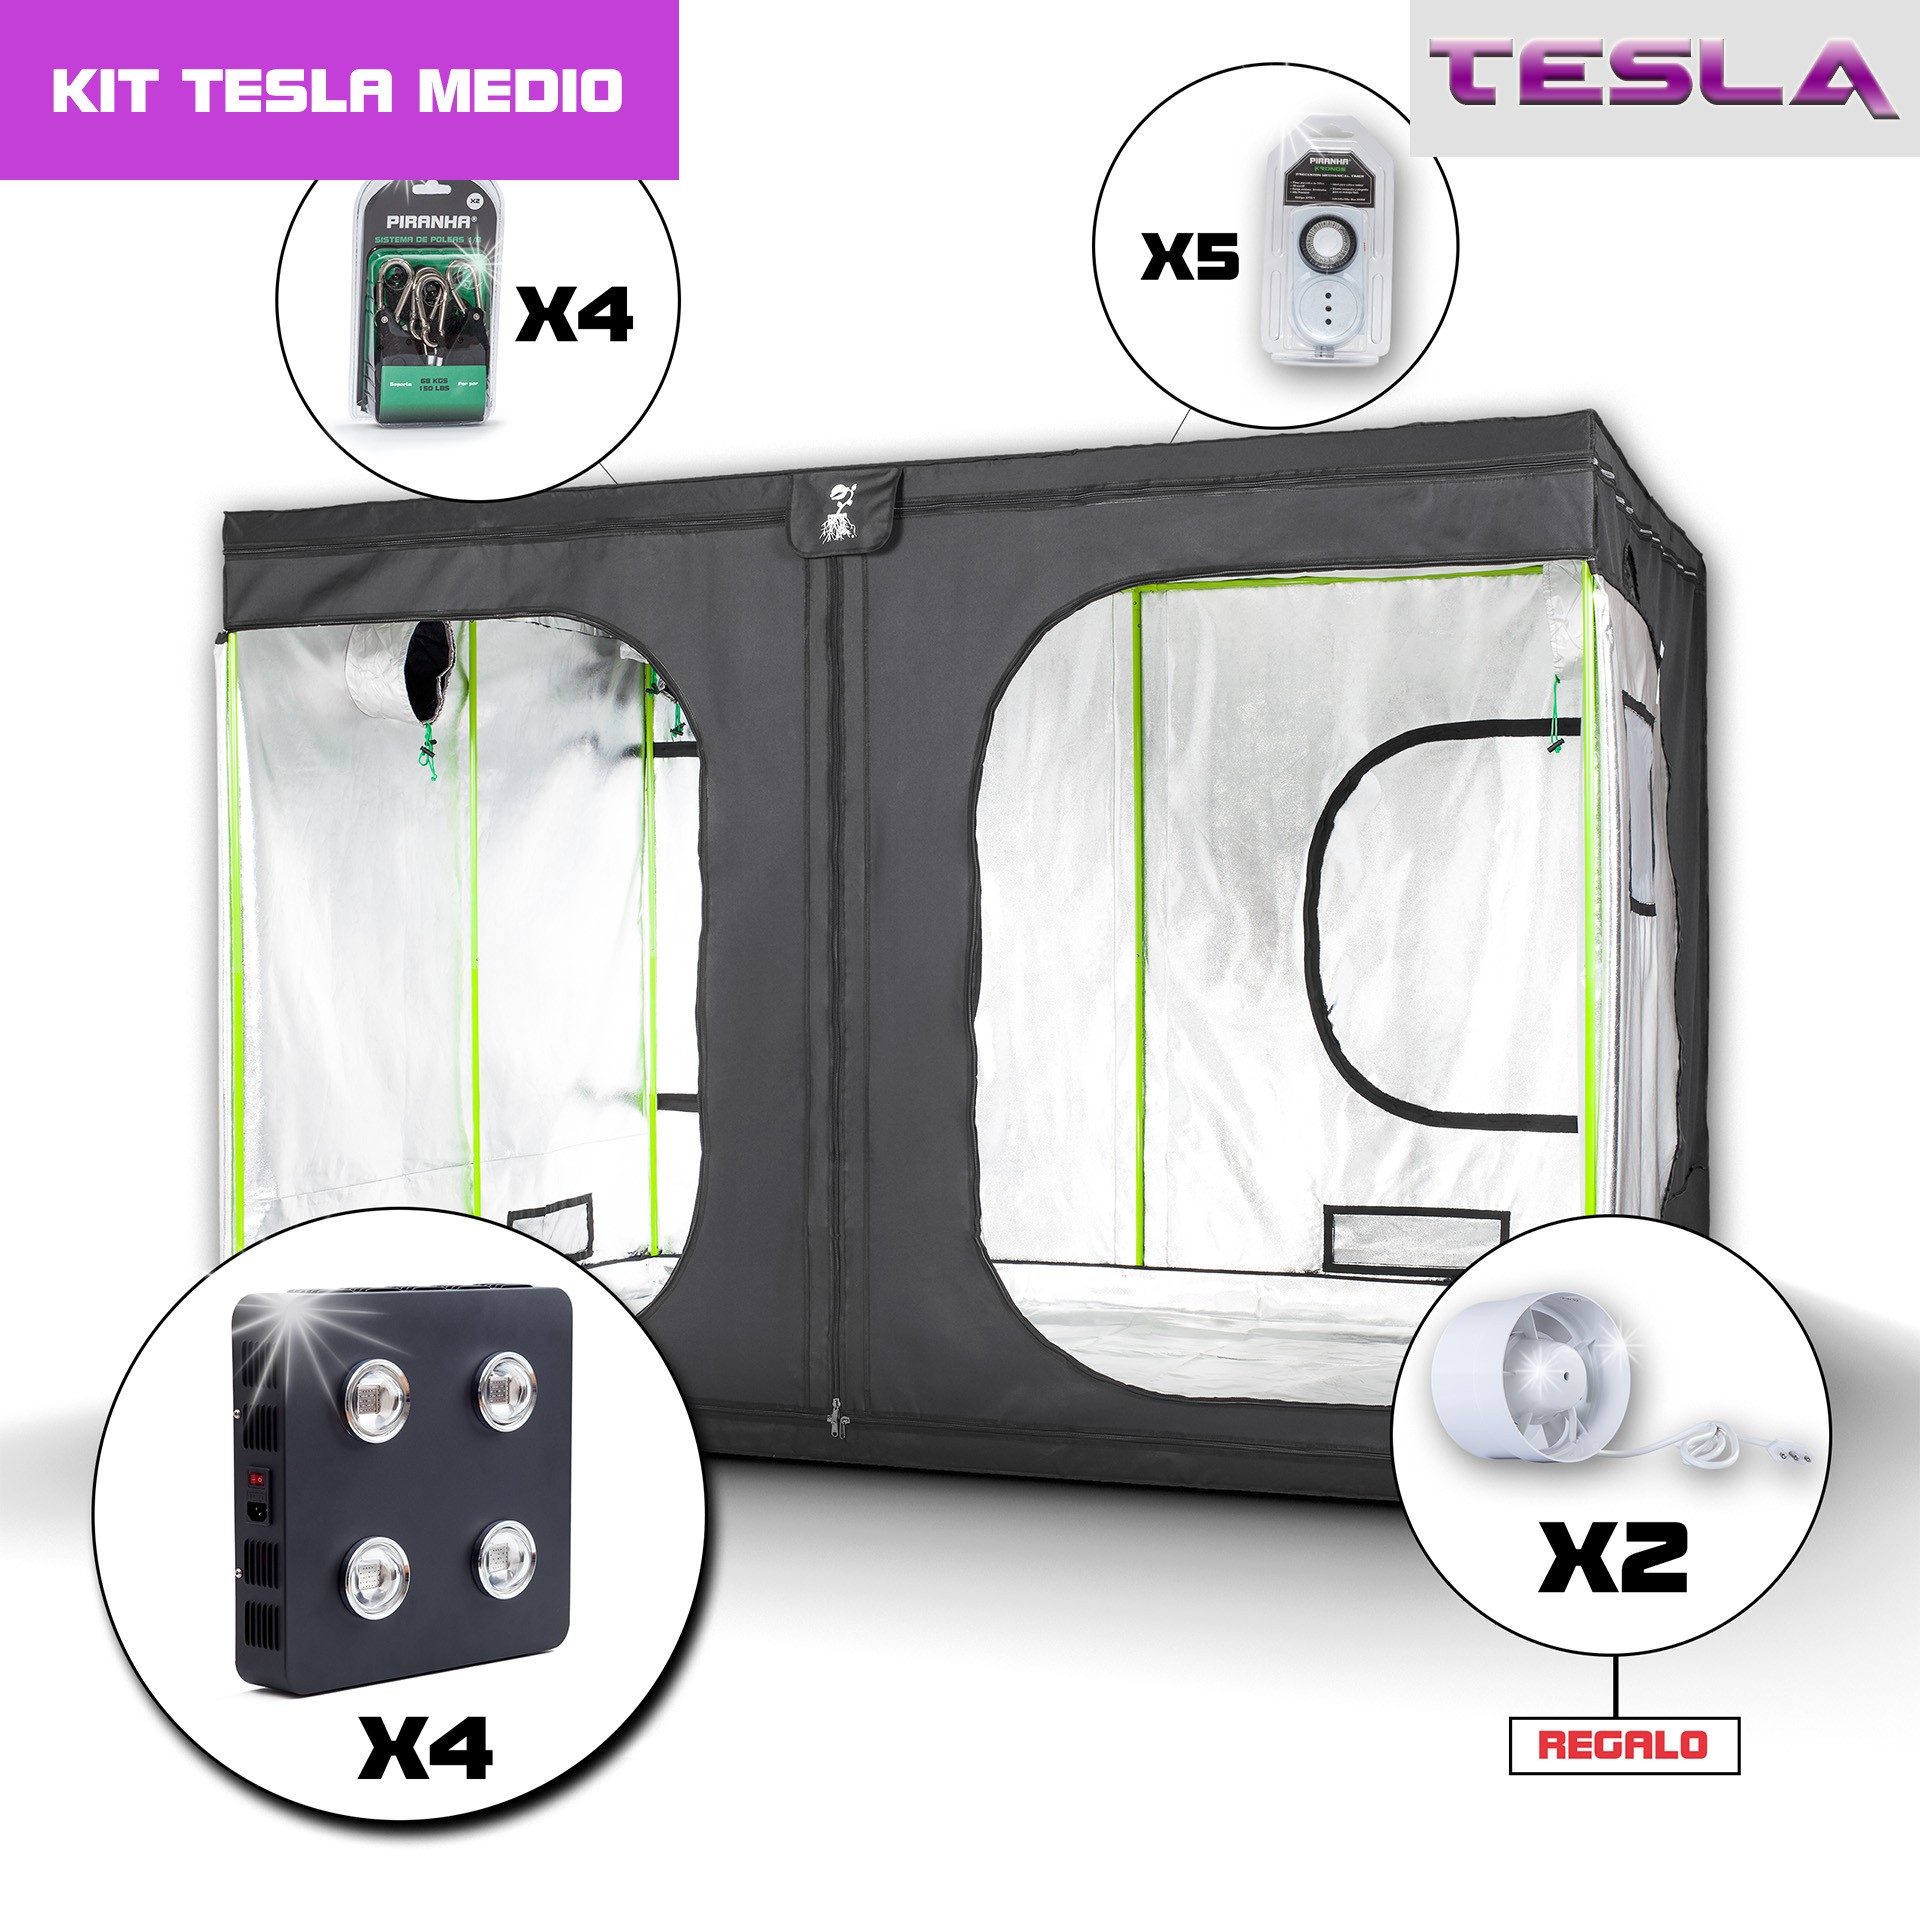 Kit Tesla 300 - T360W(X4) Medio